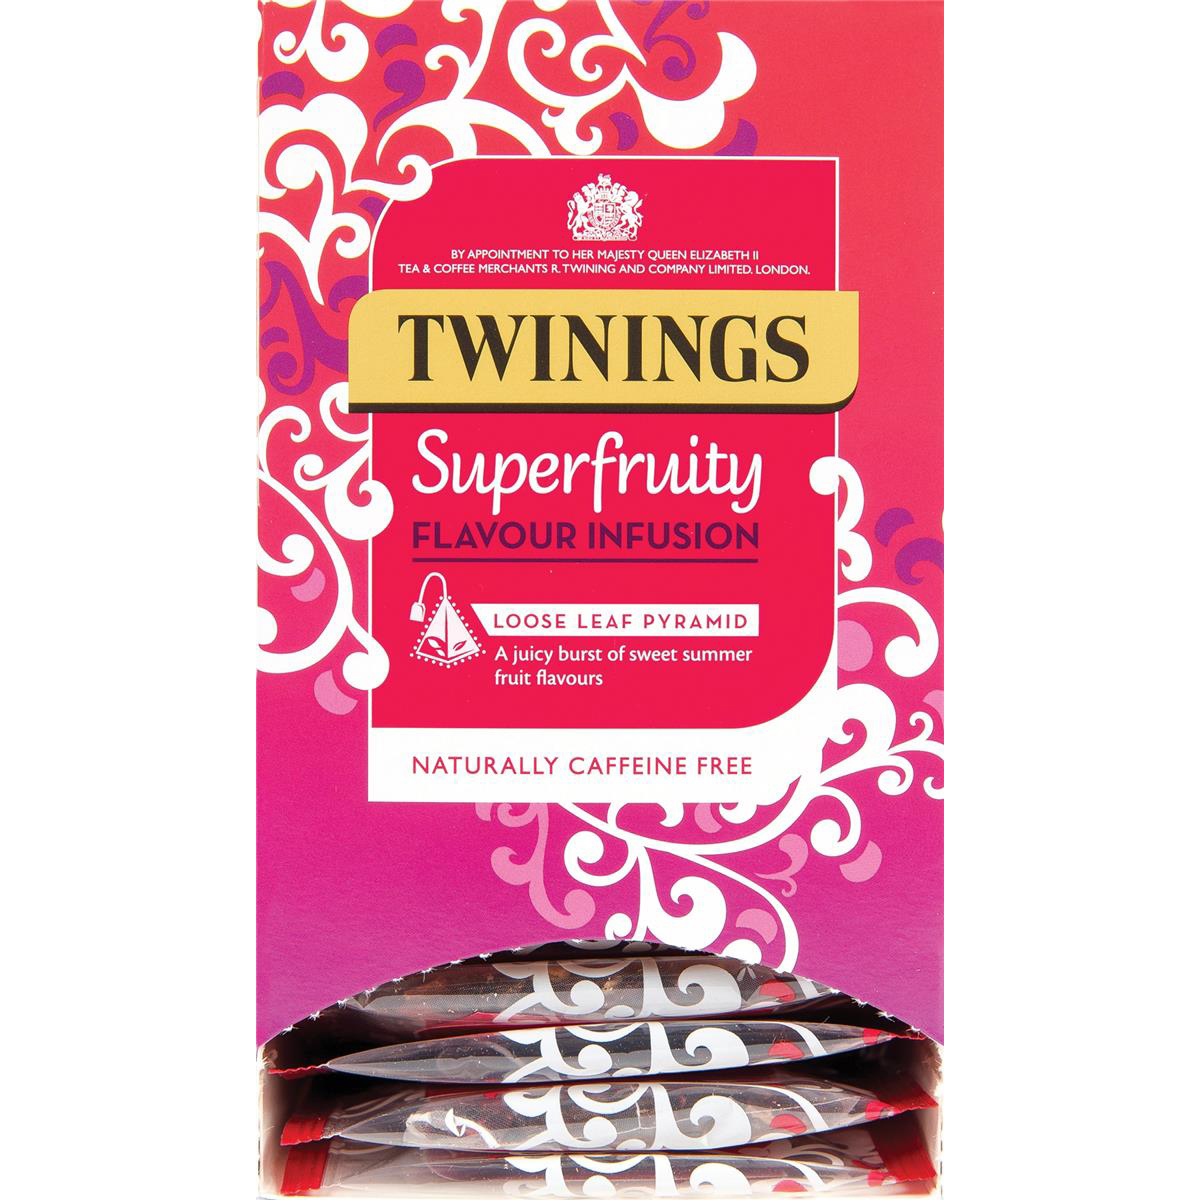 Twinings Teabags Pure Variety Pyramid Pack 6 Varieties Ref F12656 15 Bags per box